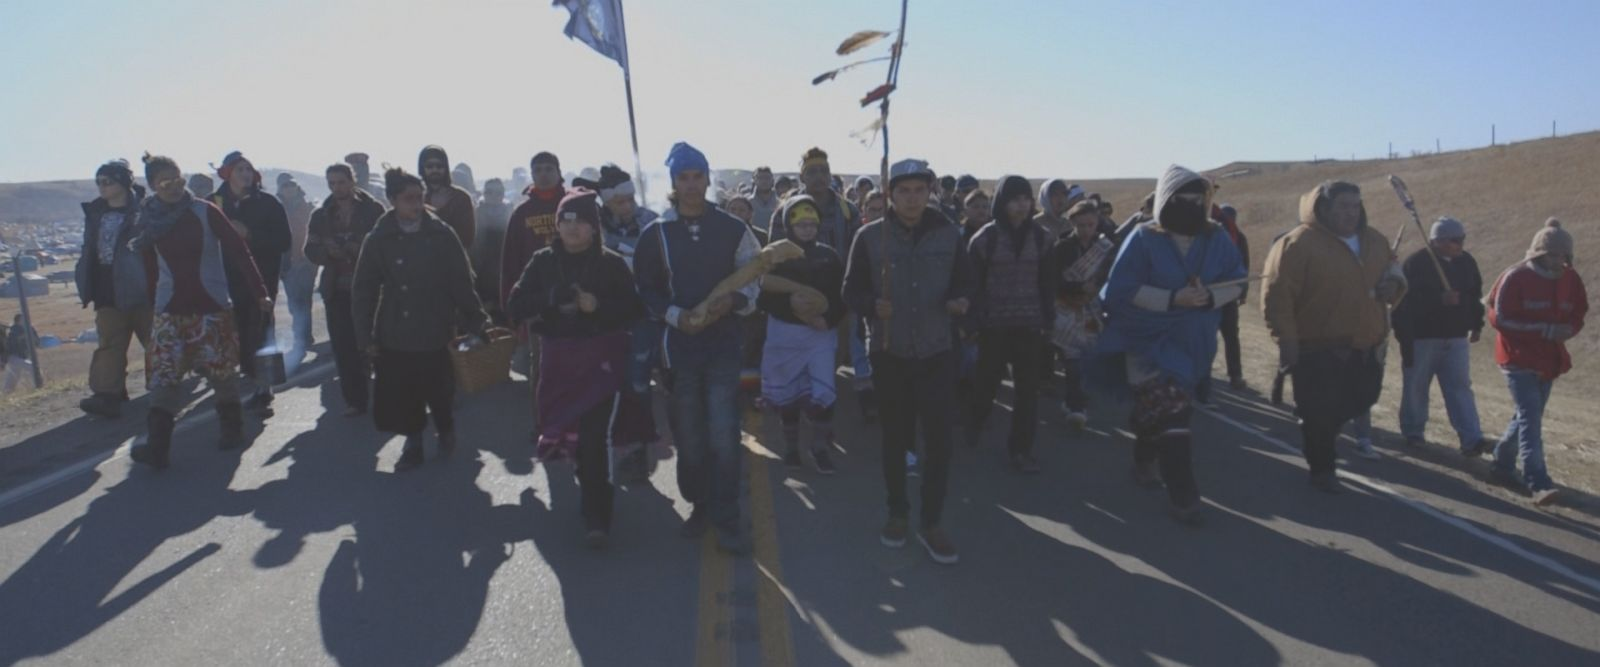 VIDEO: Revealing documentary on the youth at the heart of the Standing Rock protests against the Dakota Access Pipeline